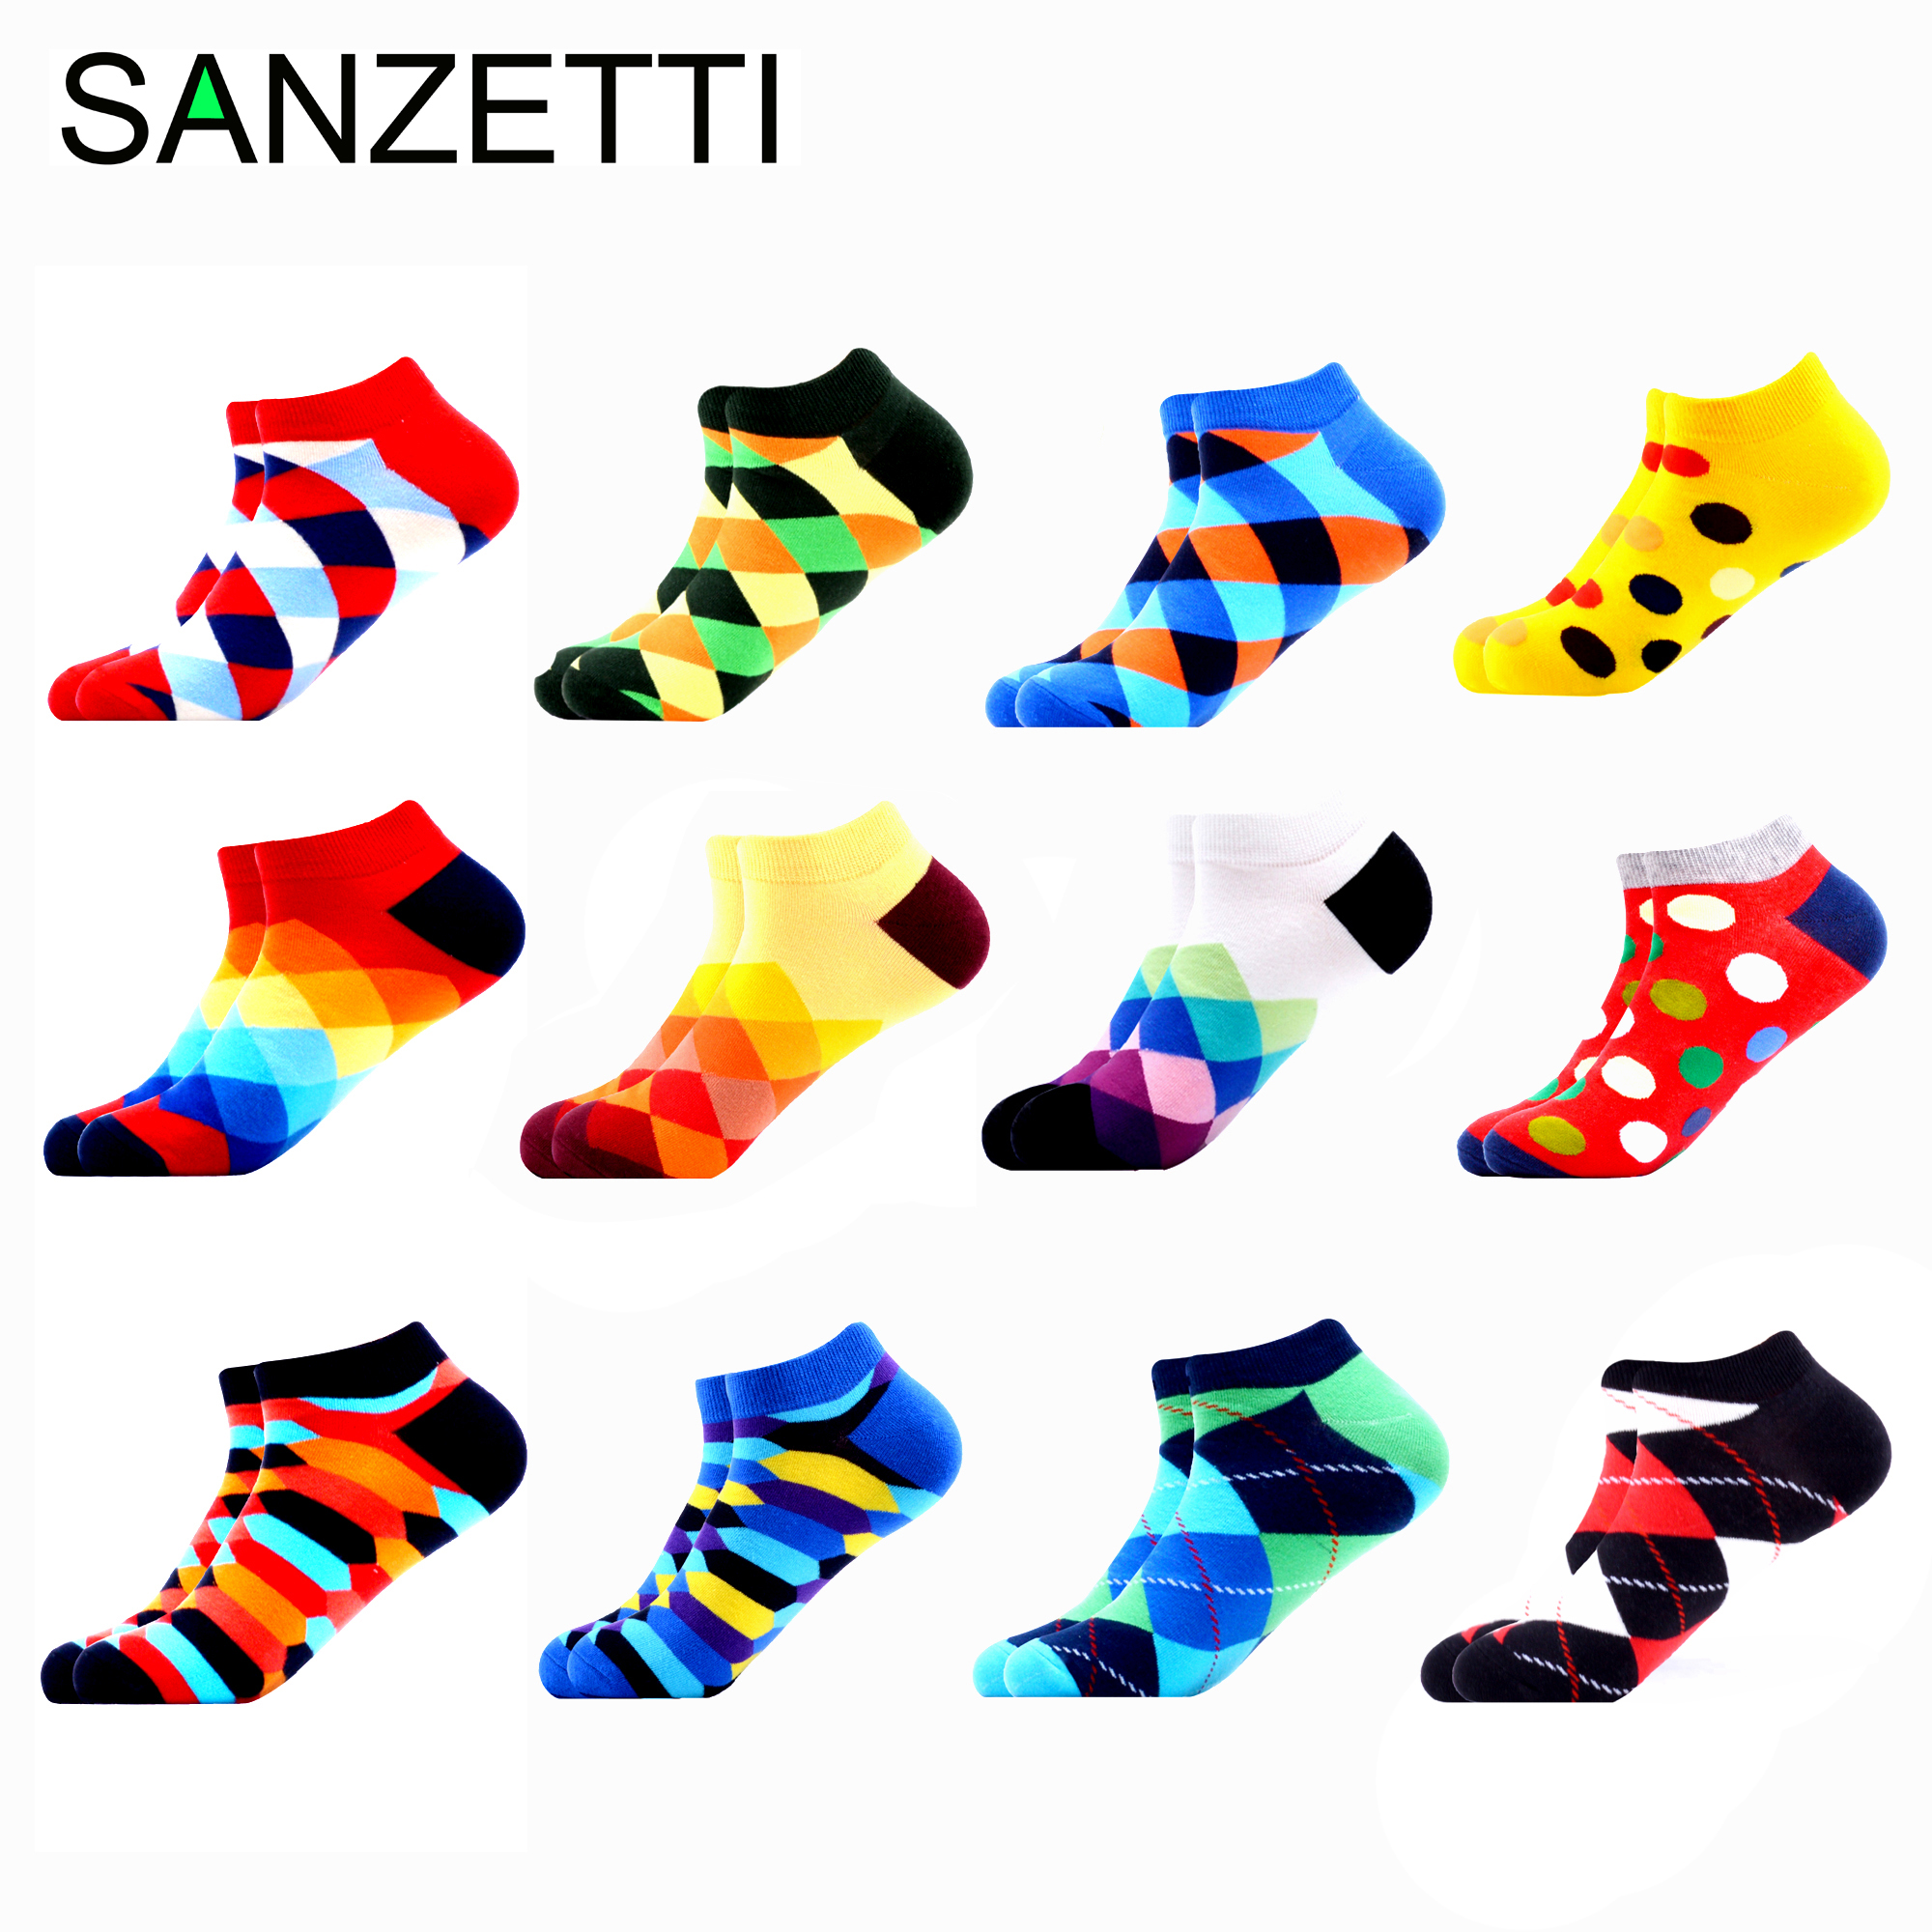 SANZETTI Men's Combed Cotton Socks Summer Casual Geometric Novelty Ankle Socks Harajuku Hip Hop High Quality Happy Dress Socks